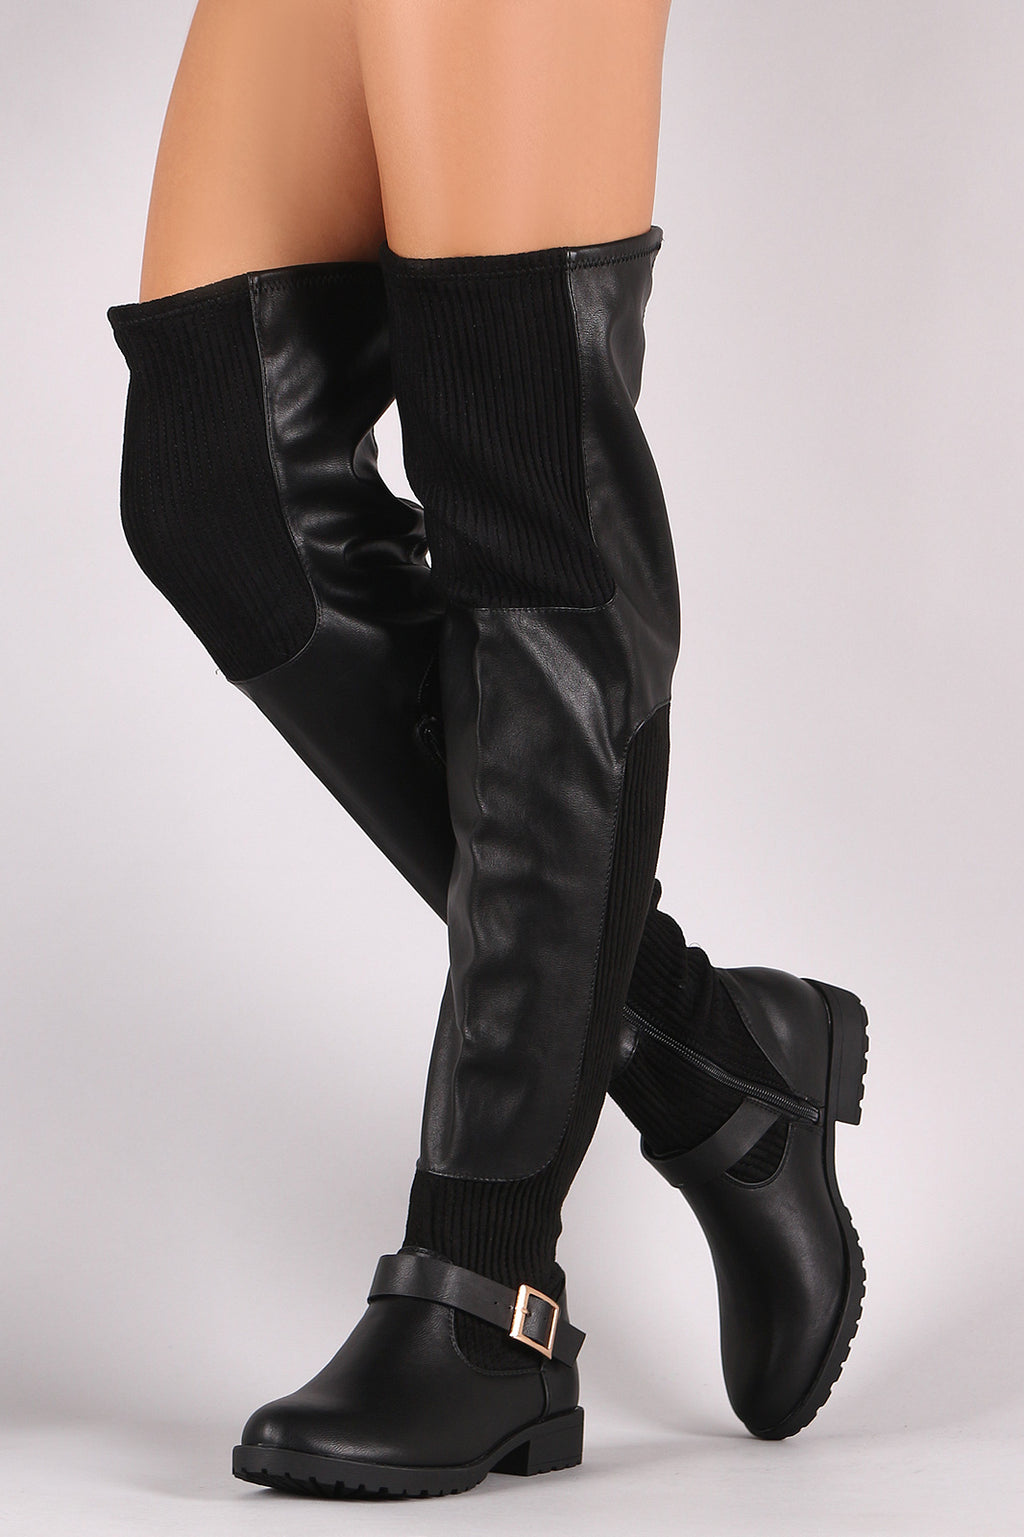 a150a865c7d3 Bamboo Leather Ribbed Knit Buckled Over-The-Knee Riding Boots ...